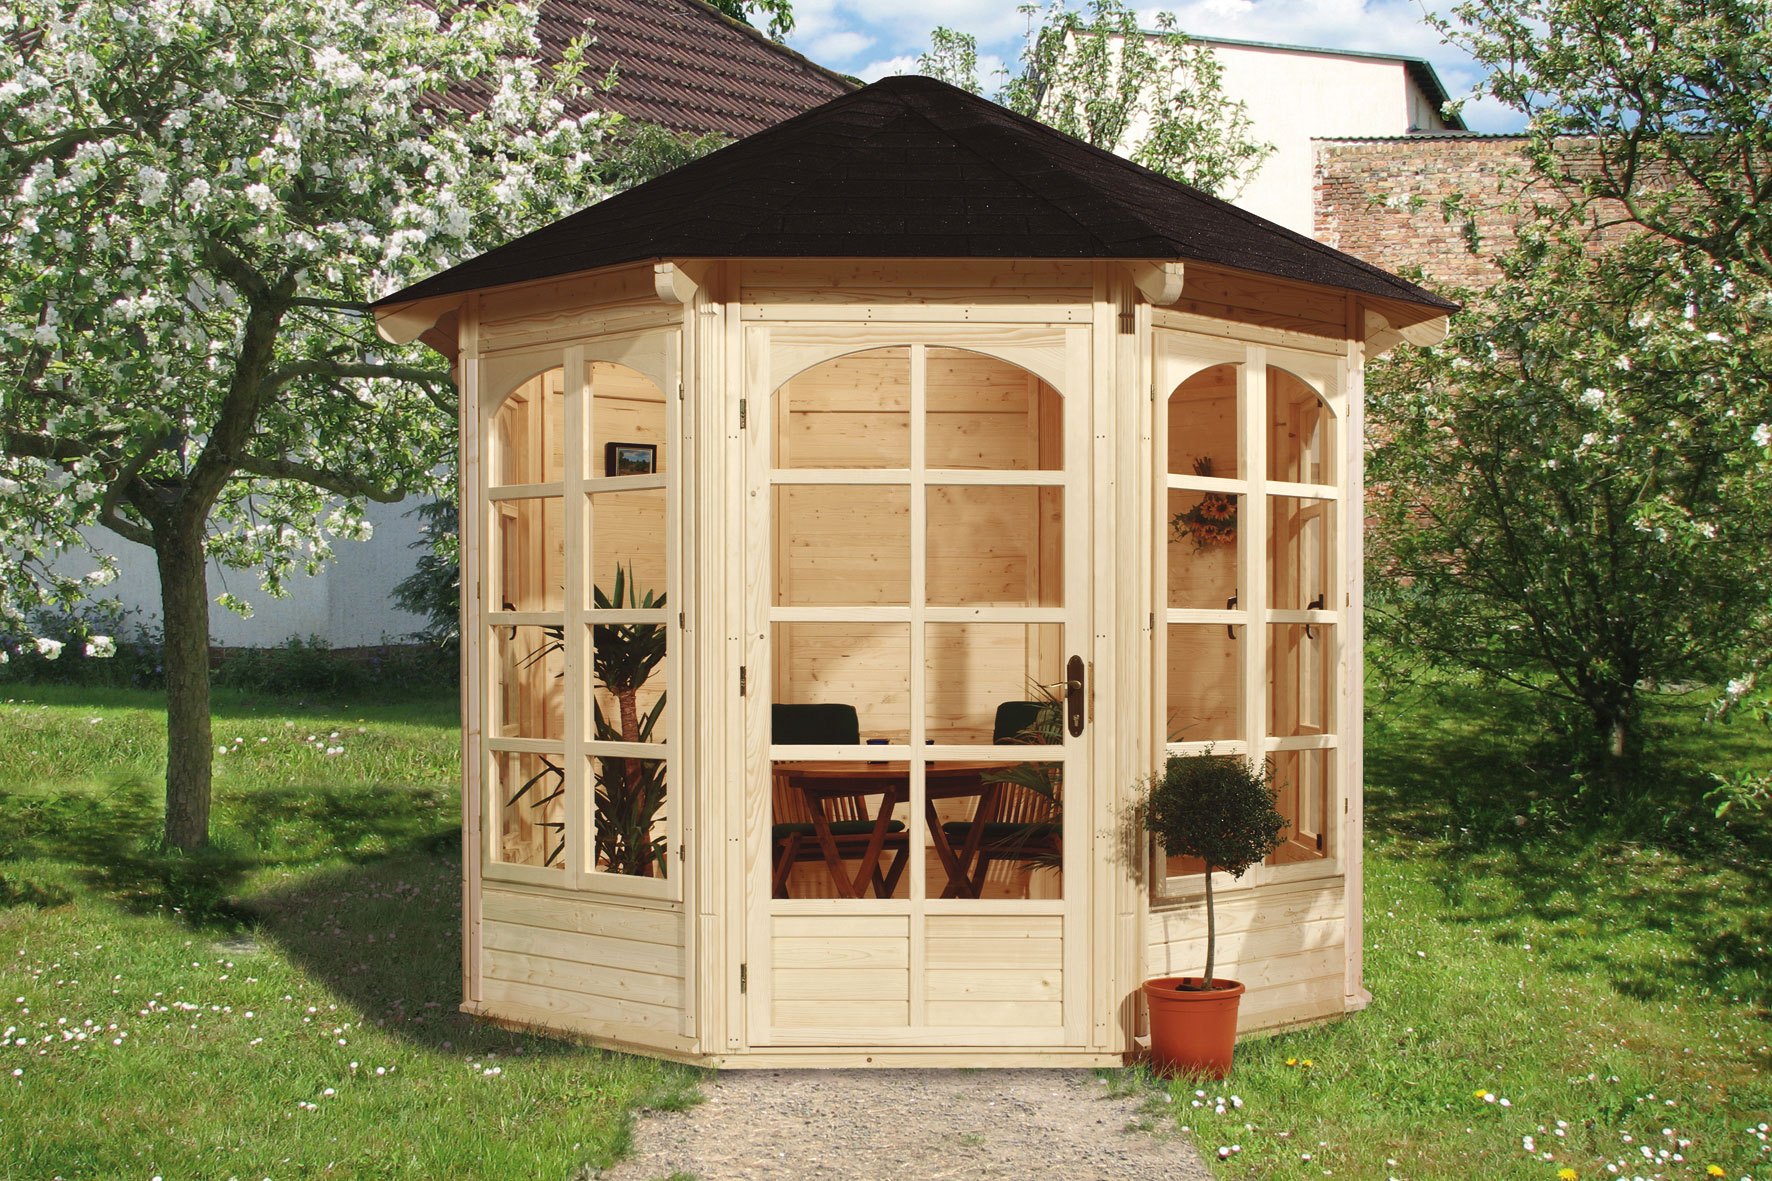 weka gartenlaube pavillon 234a natur 336x365cm 4 fenster bei. Black Bedroom Furniture Sets. Home Design Ideas